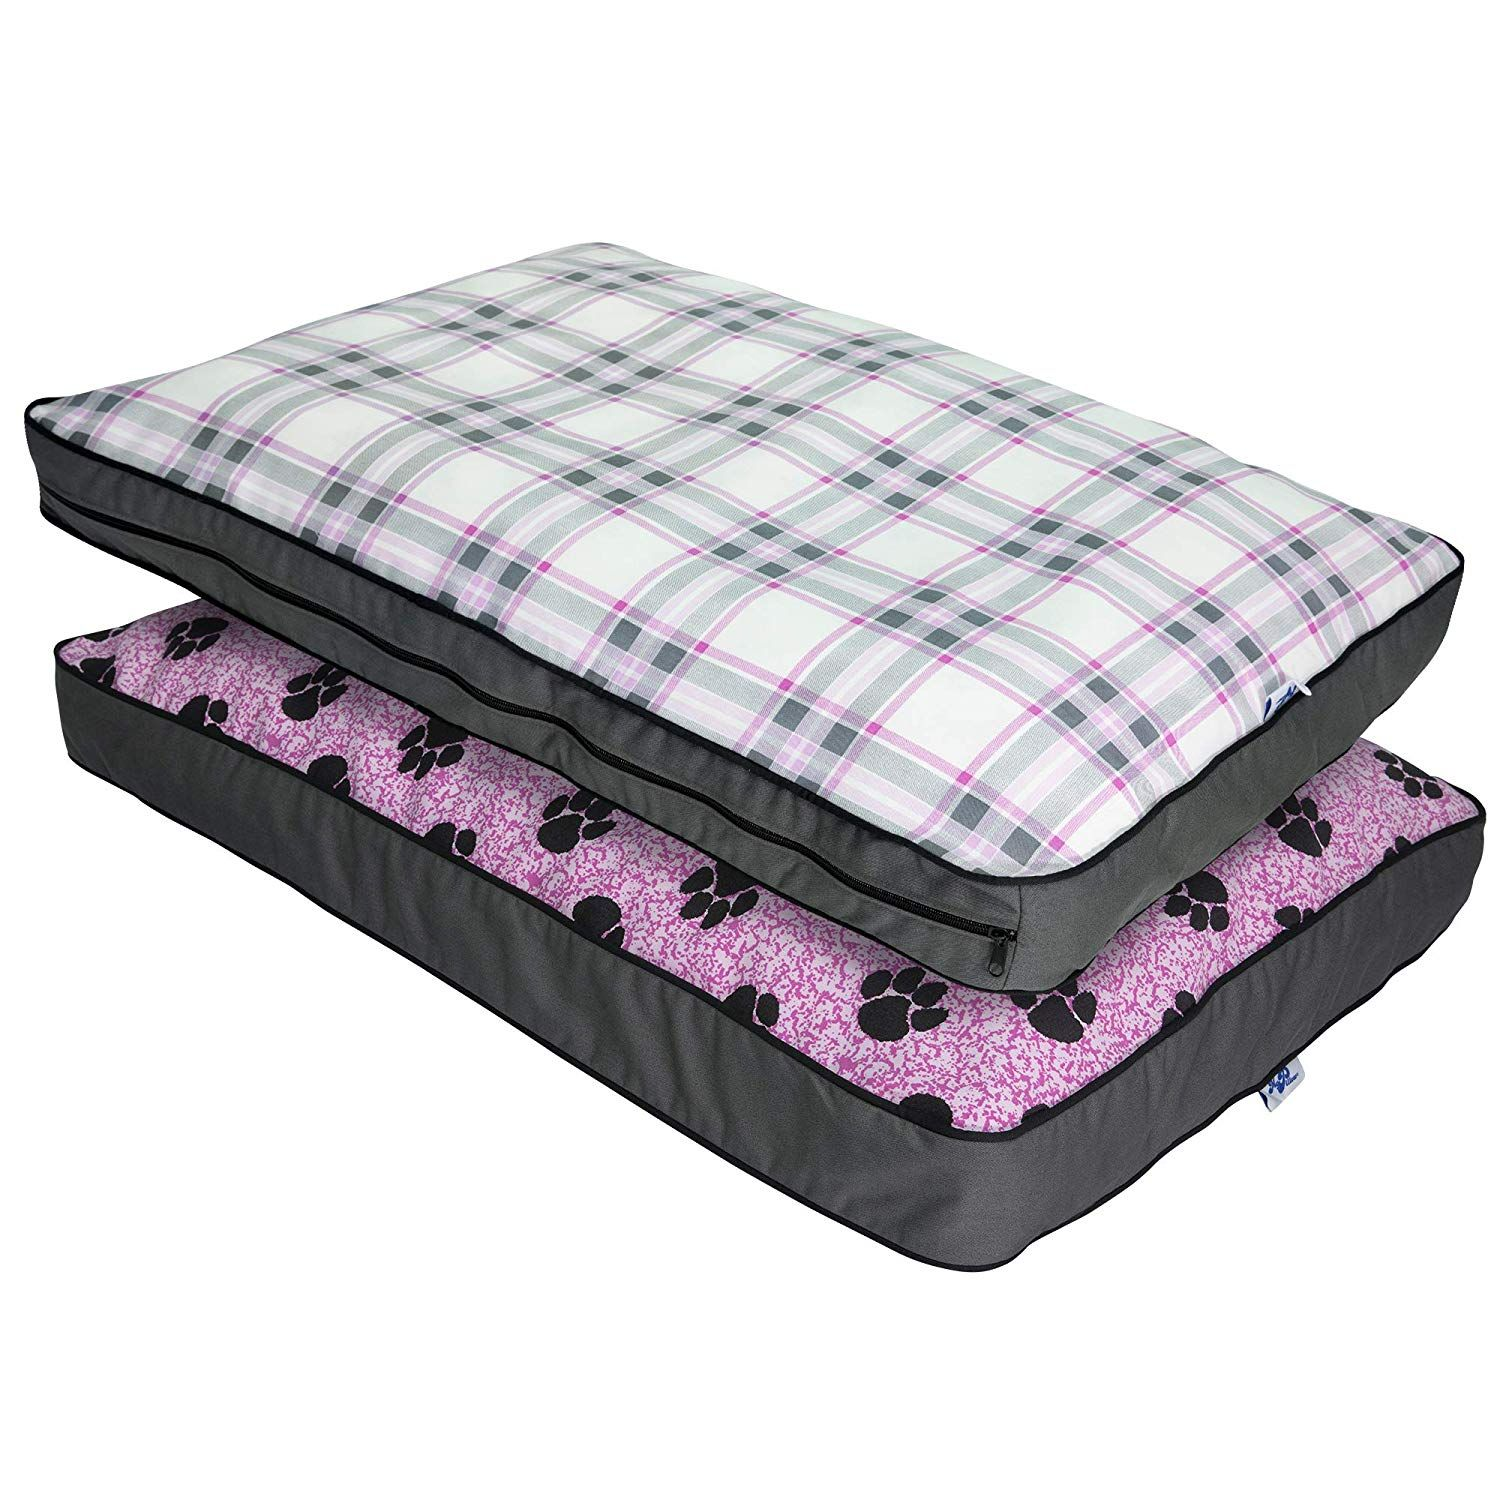 MyPillow Dog Beds Dog bed, Dog pillow bed